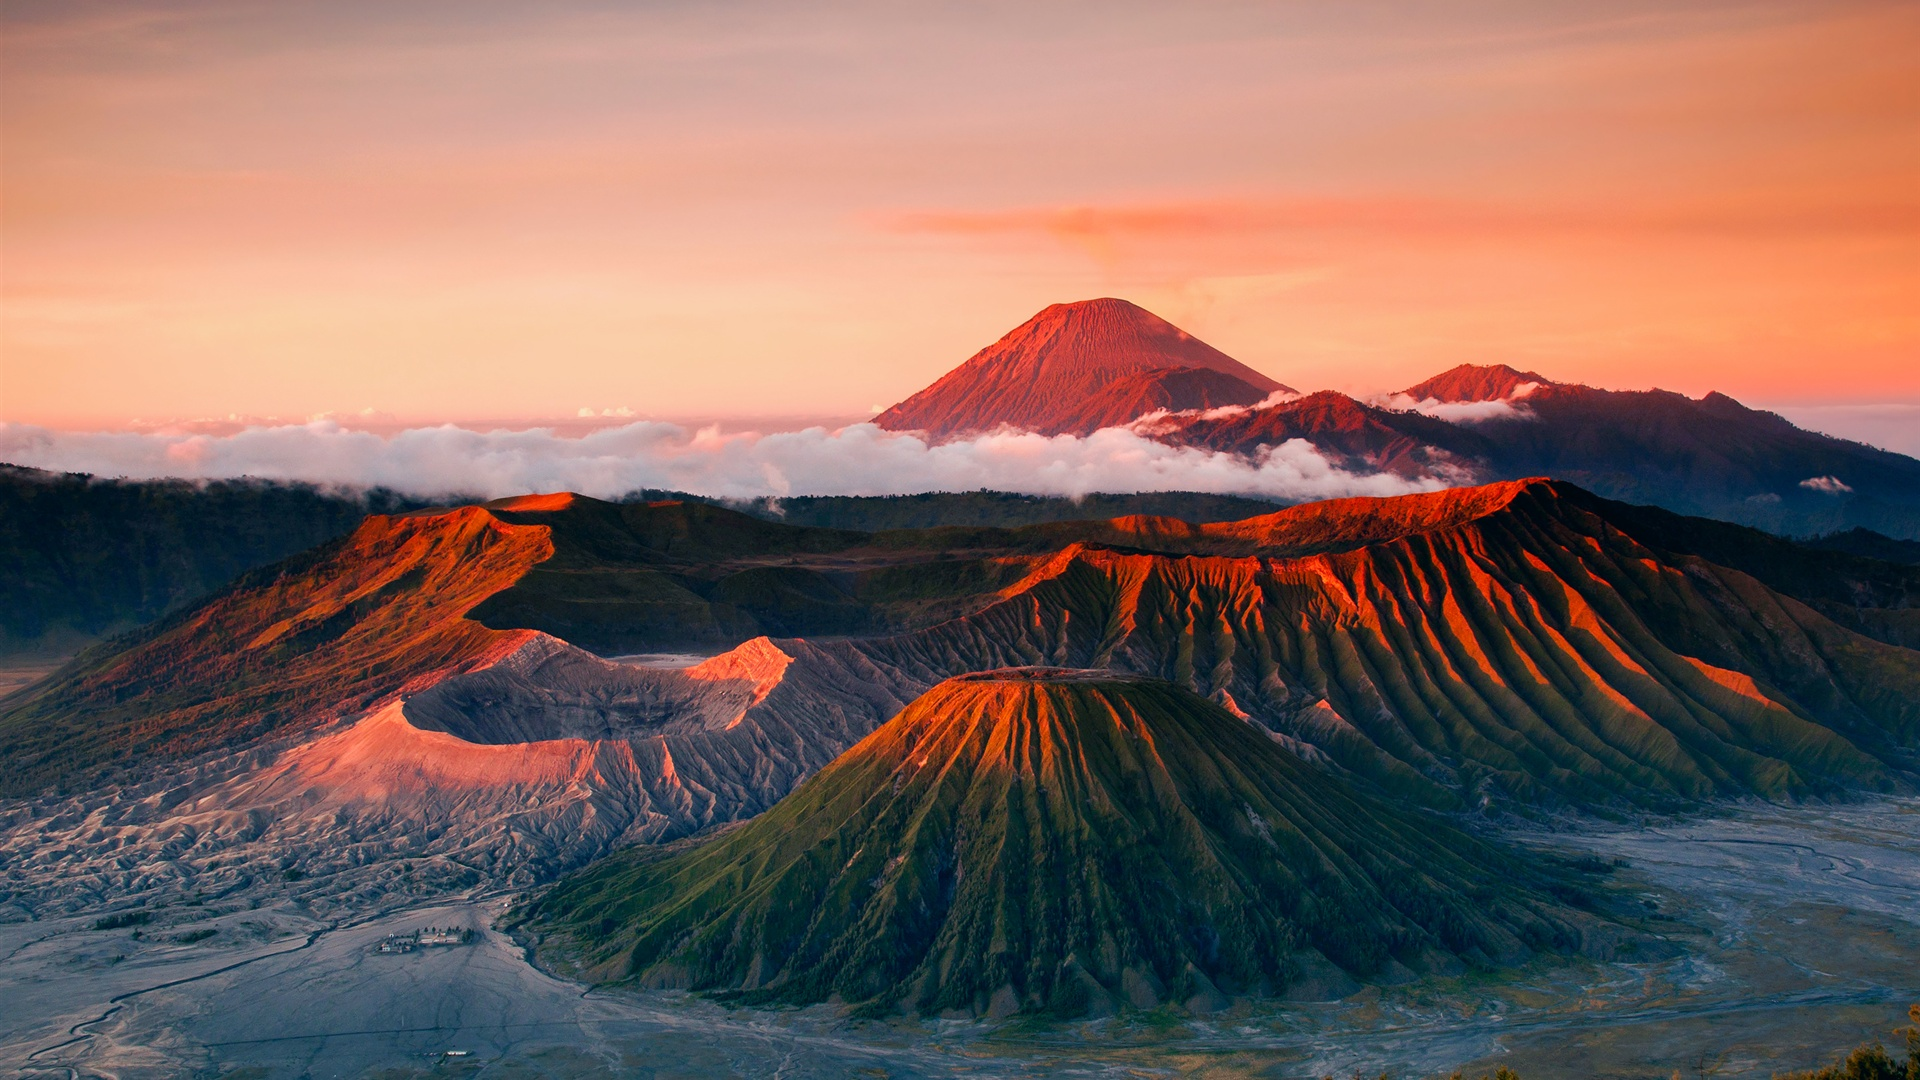 Download Wallpaper 1920x1080 Indonesia, Java, Tenger